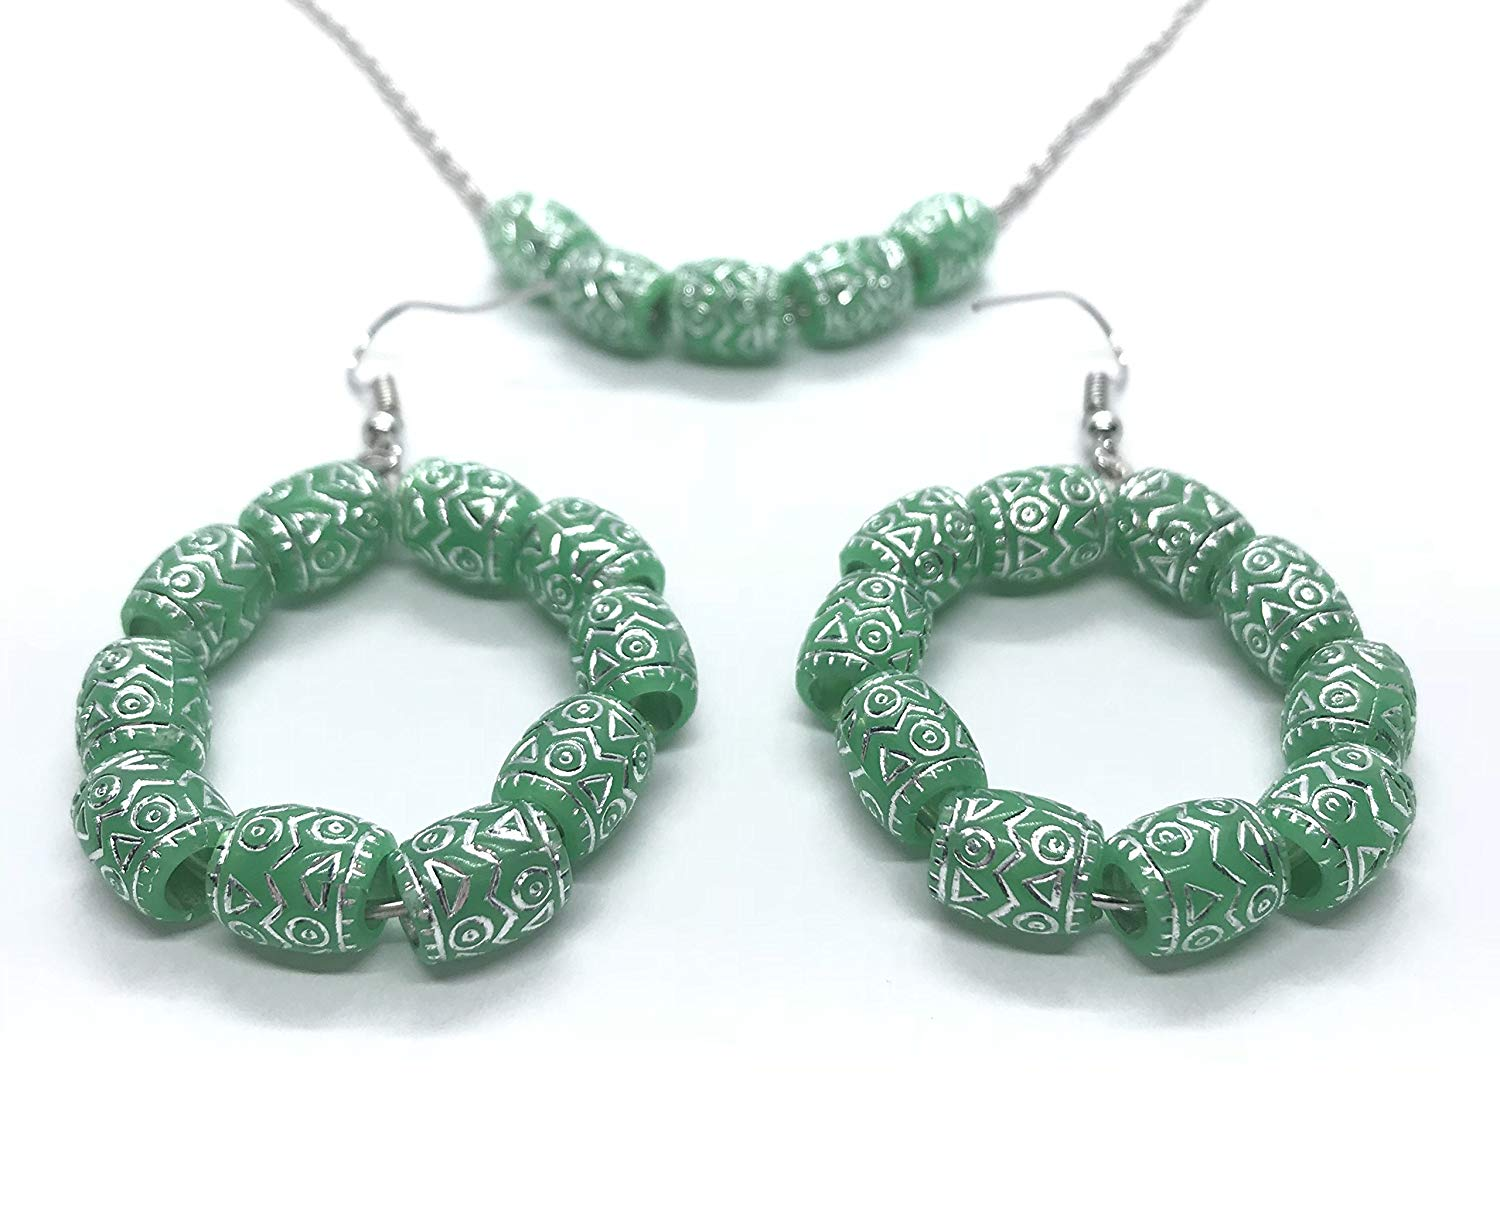 Aadyasha Creations, Handmade and crafted green acrylic bead earrings and necklace. Silver designed, green acrylic bead jewelry.